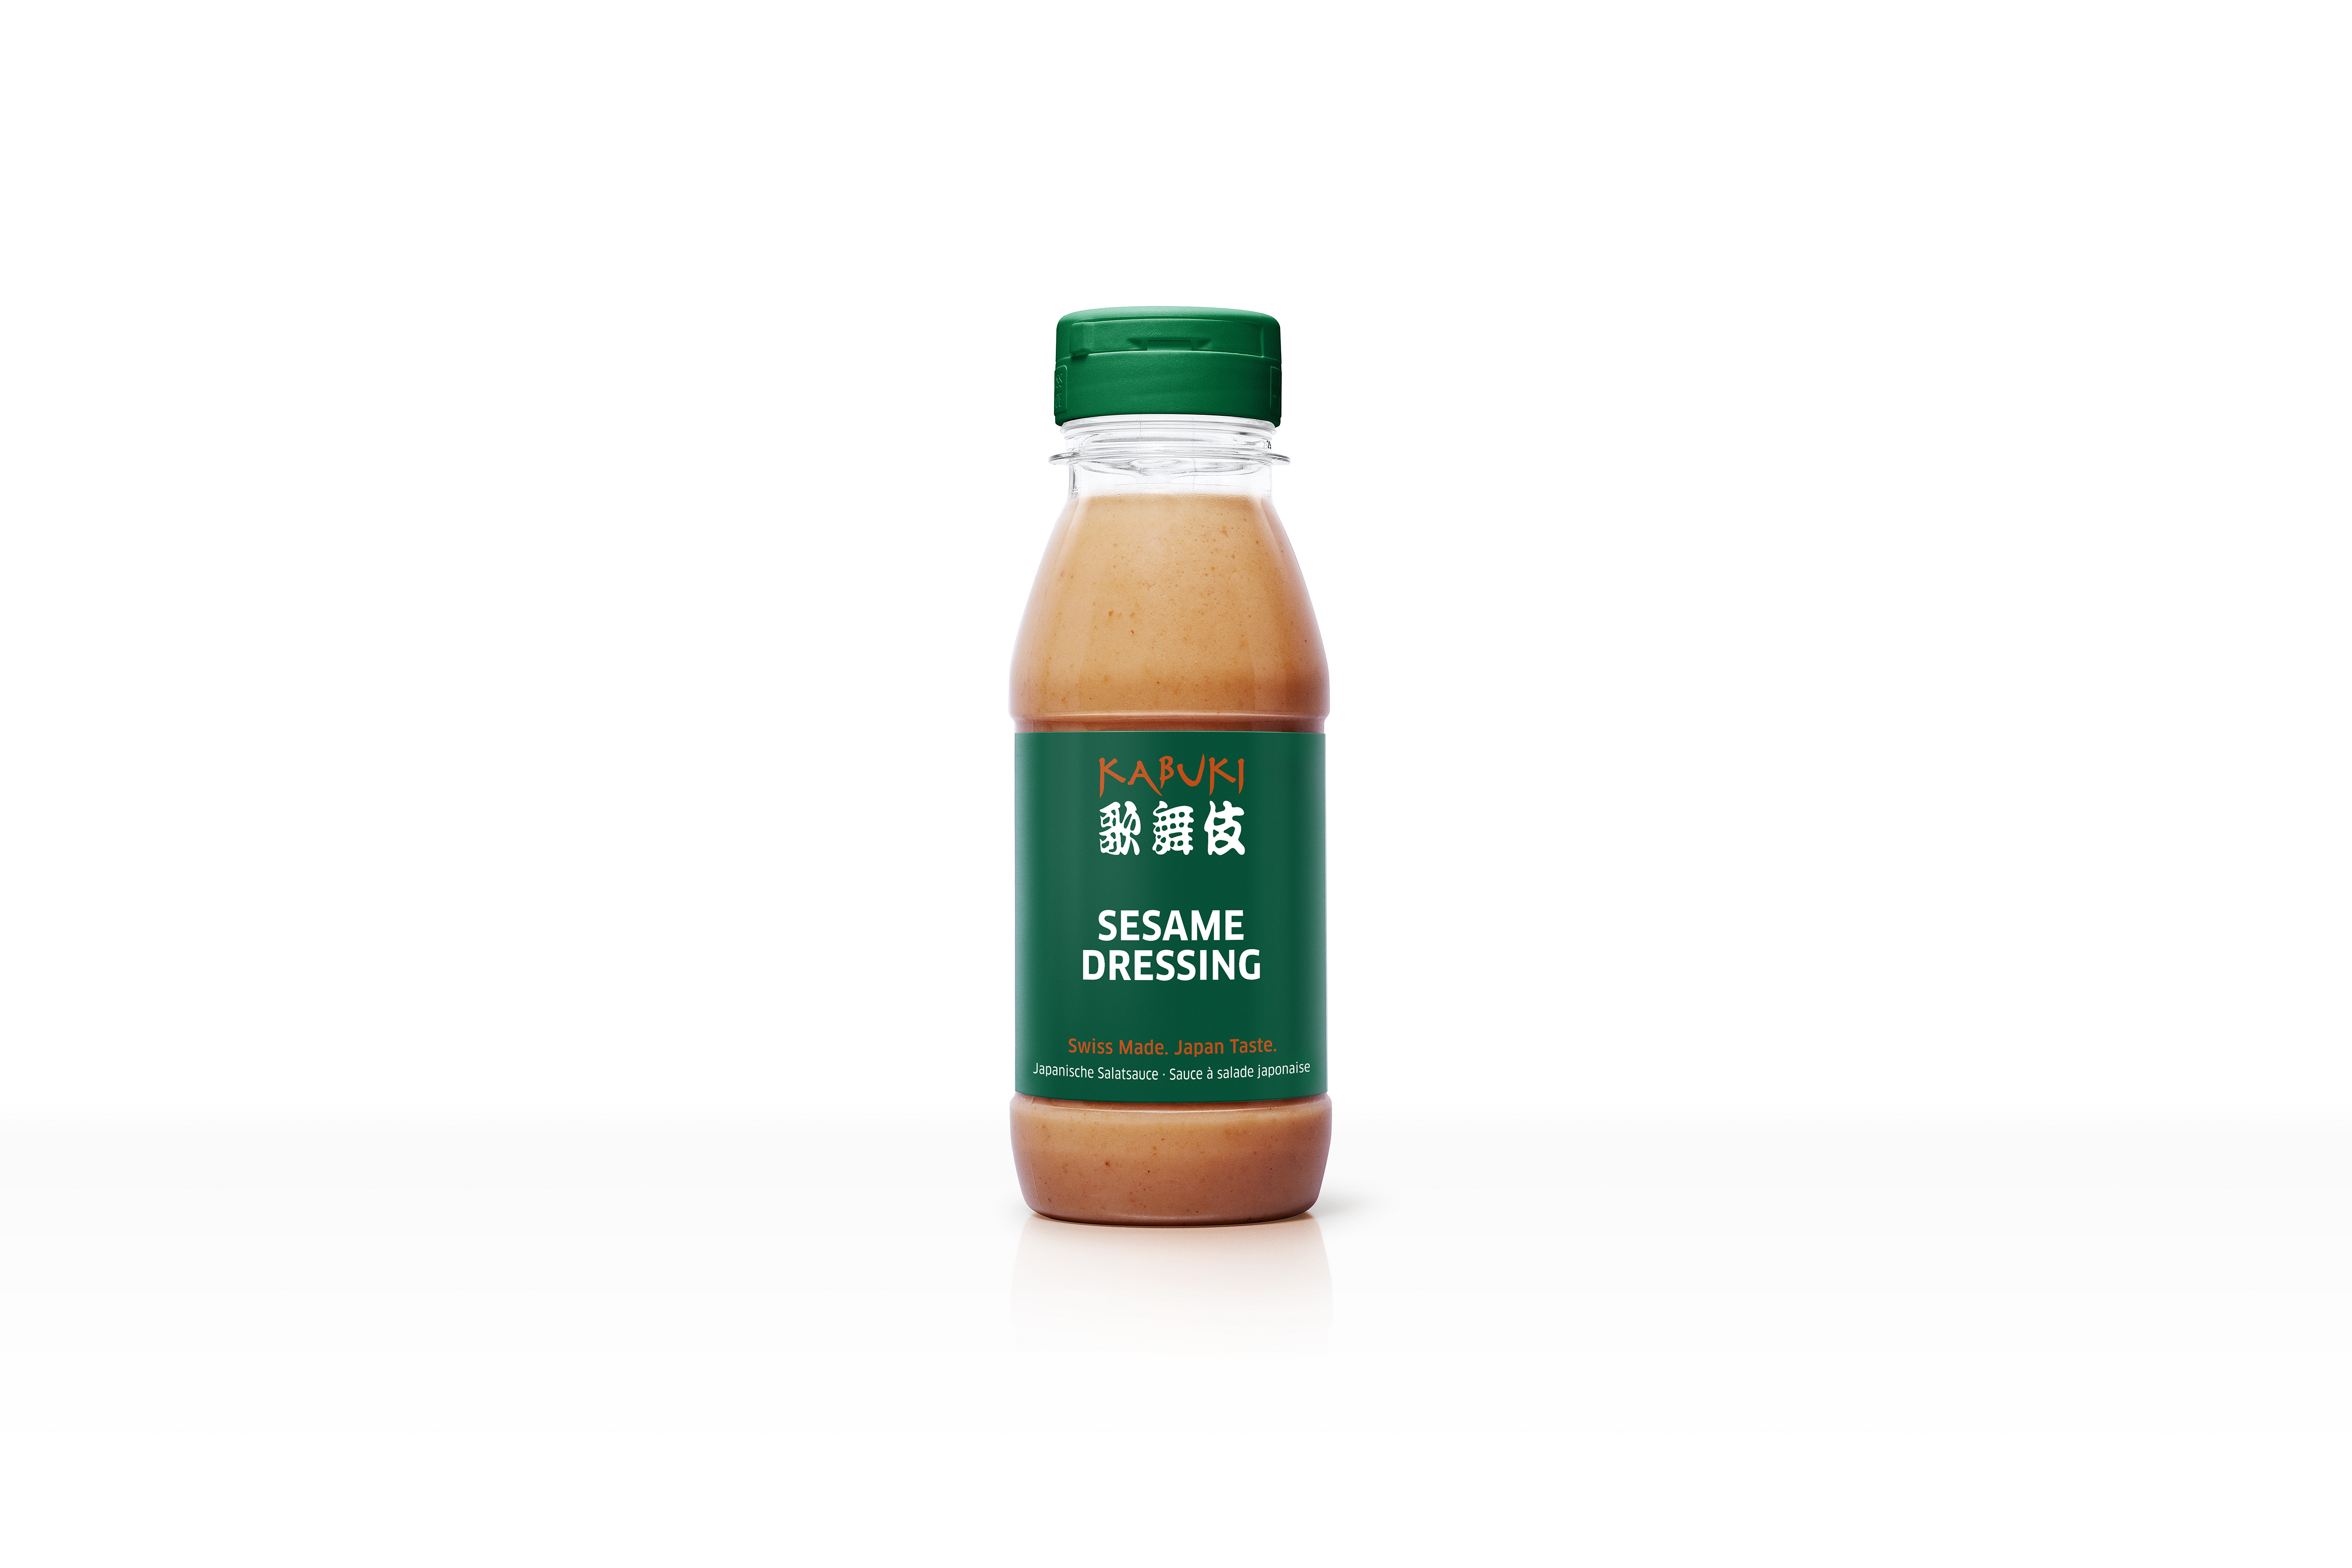 Kabuki_SESAME_Dressing-Bottle_RT02_RGB